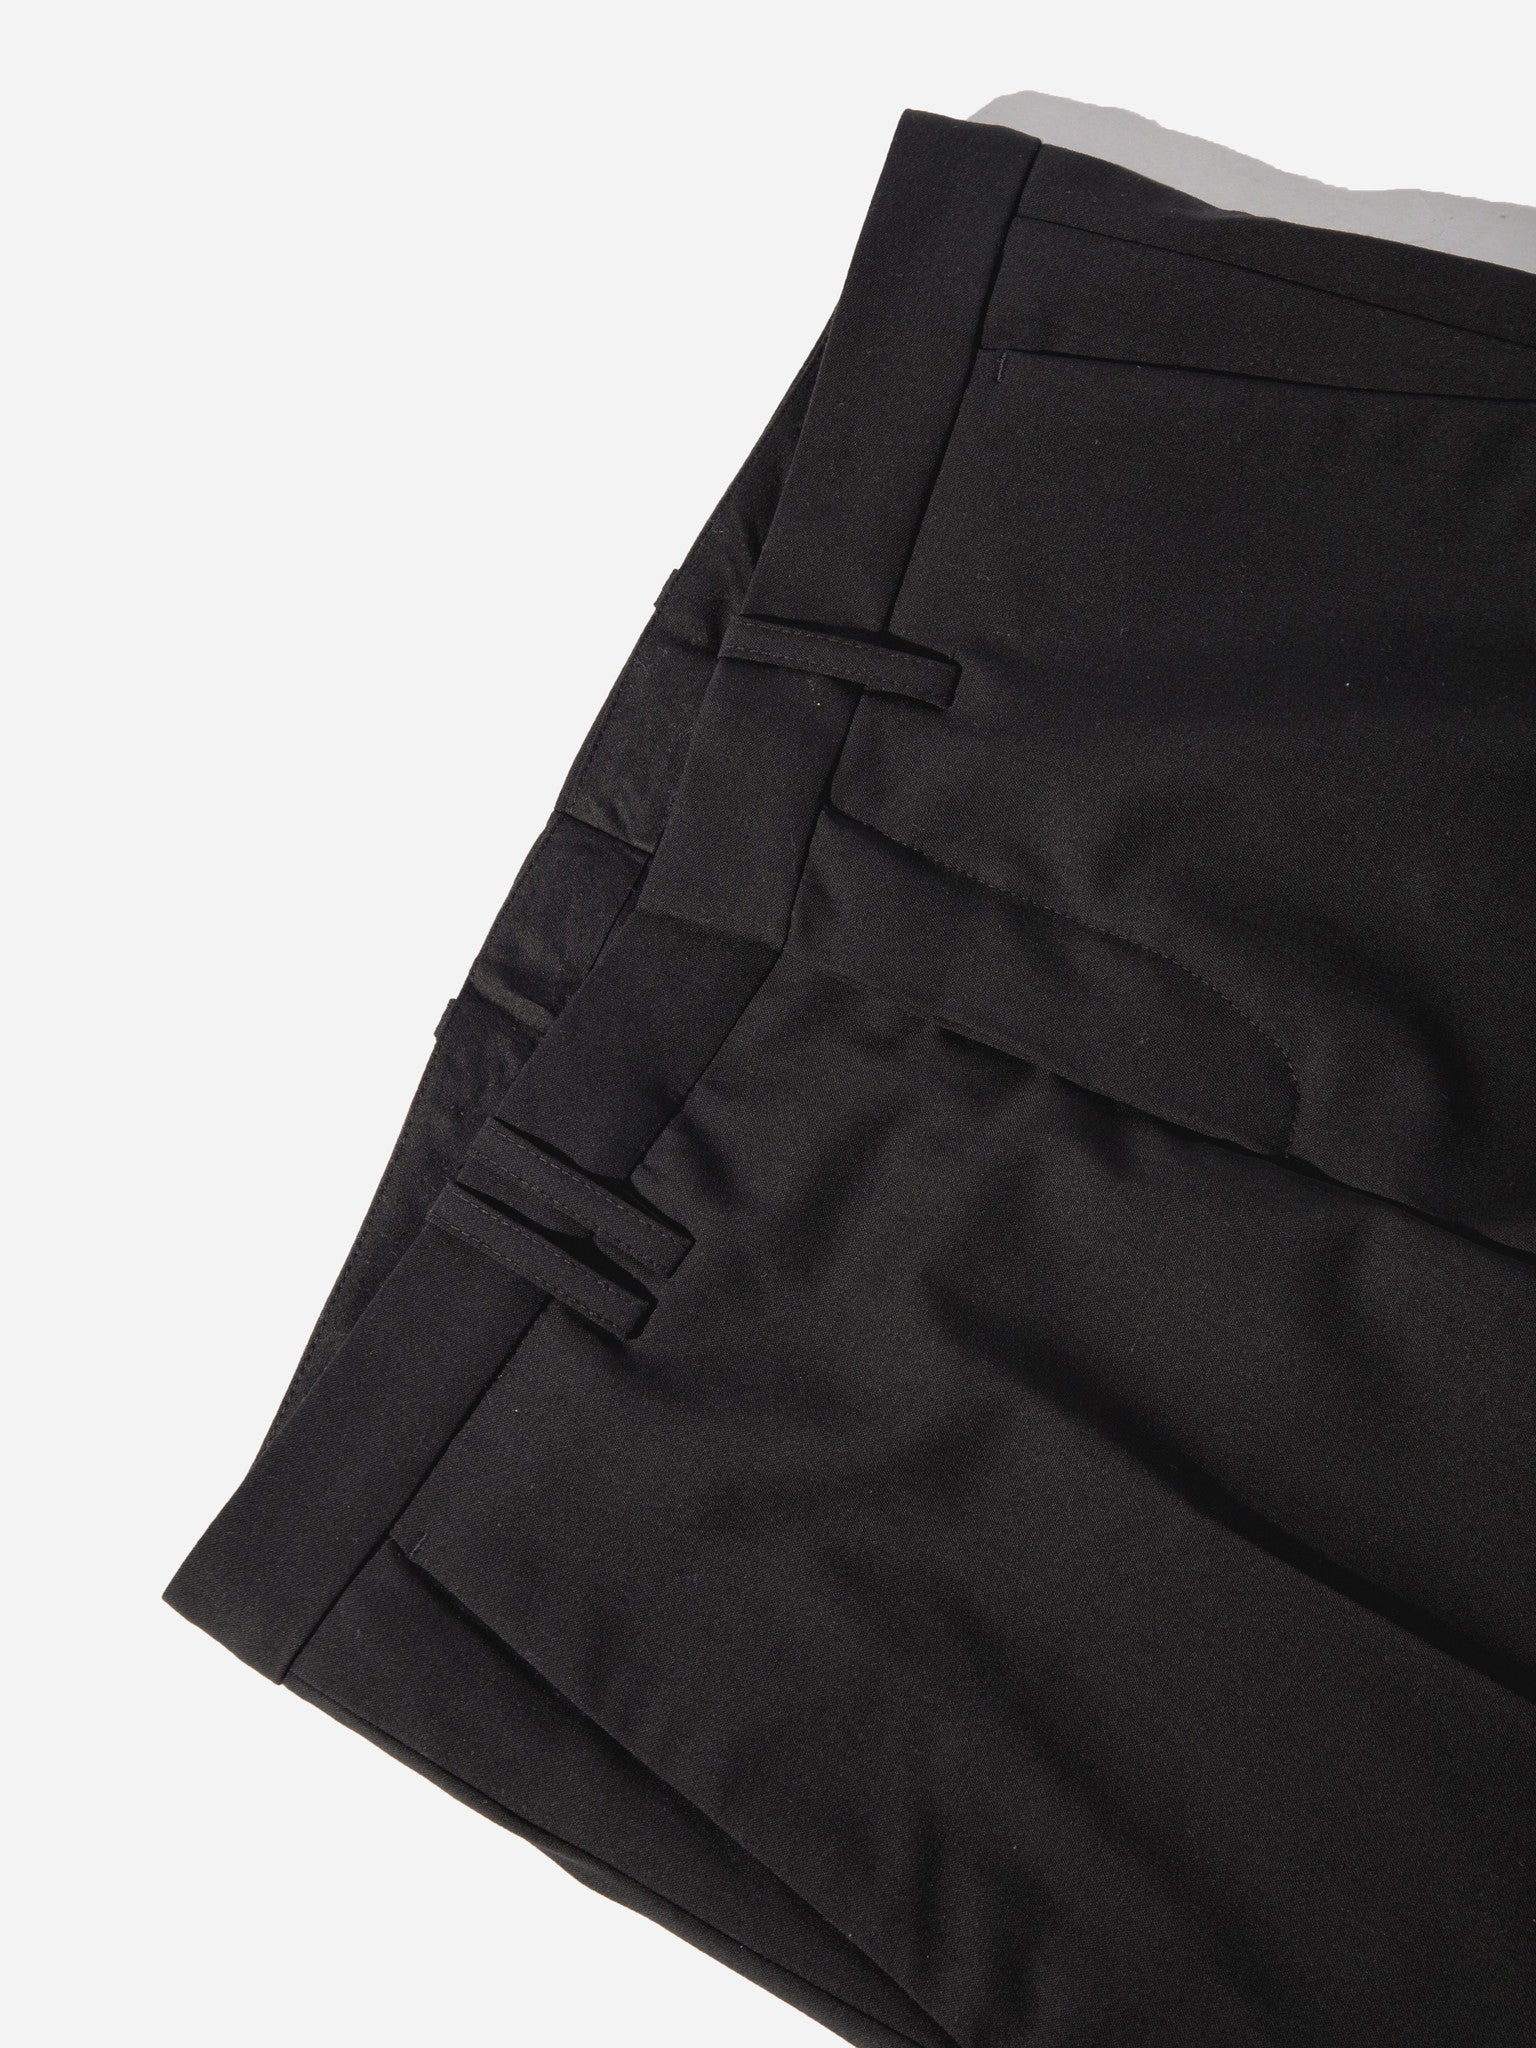 Black Cropped Tailored Trouser 6